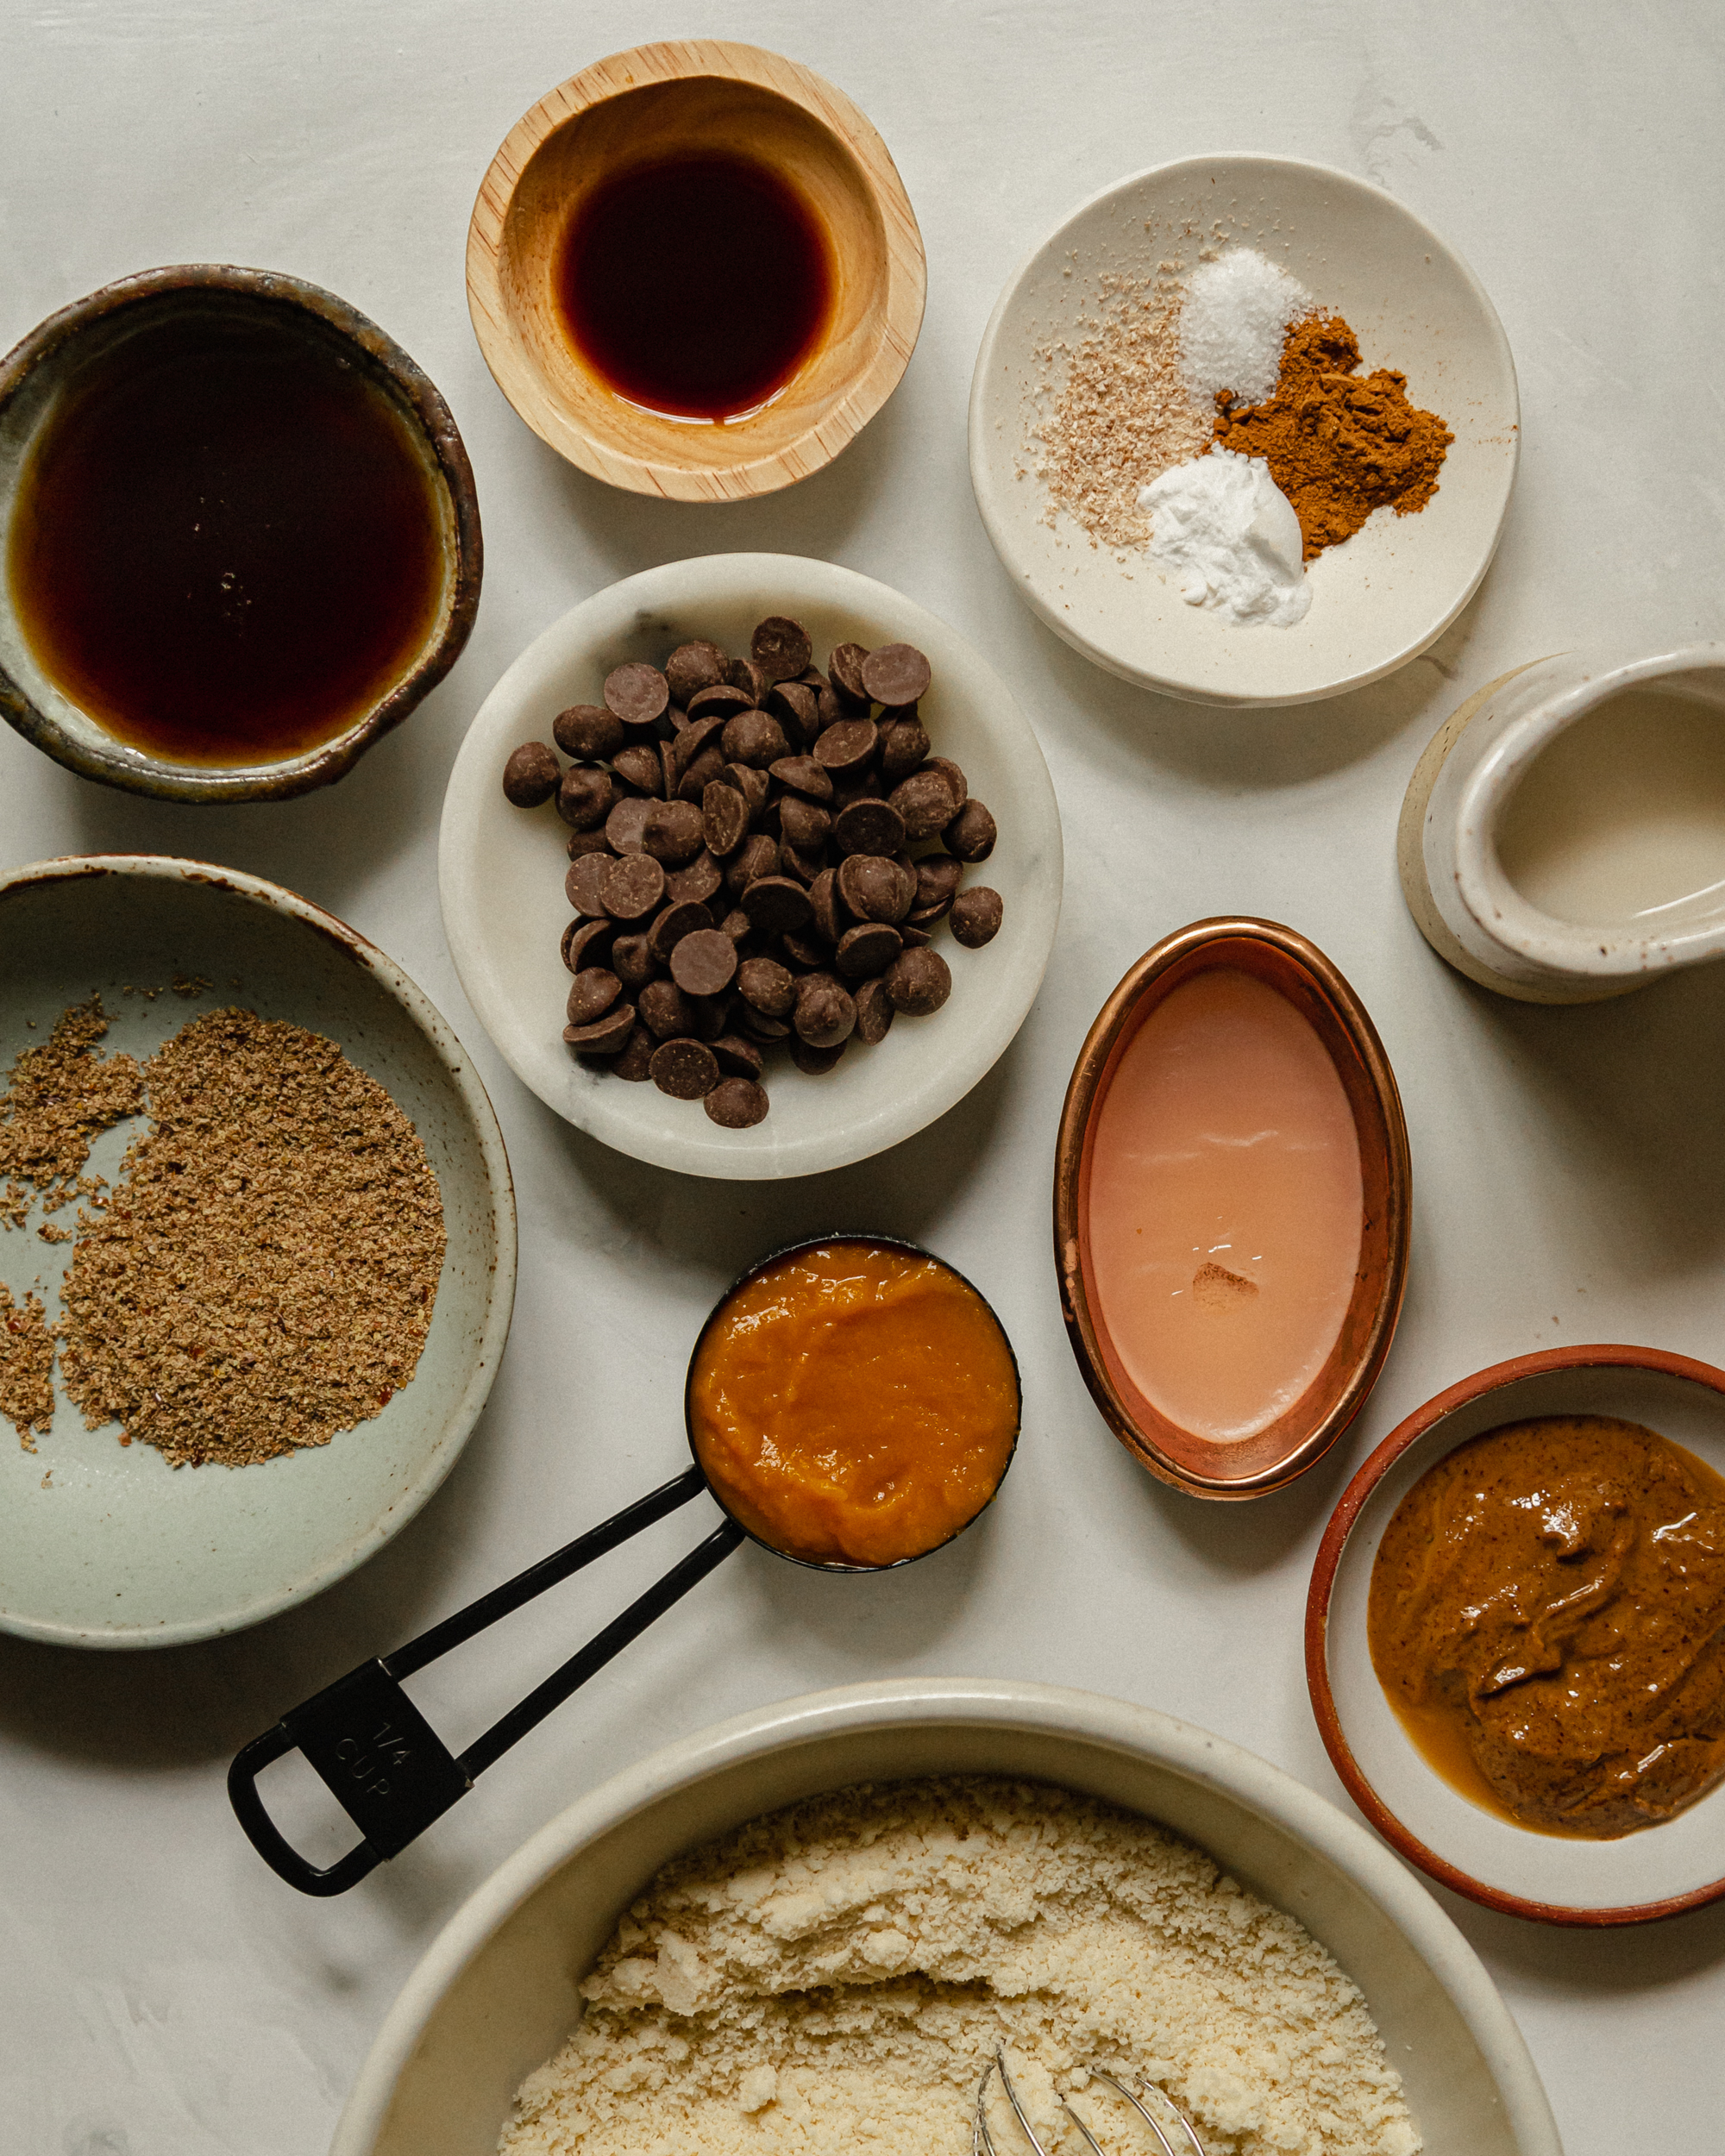 An overhead shot of ingredients used for a vegan and grain free cookie recipe.